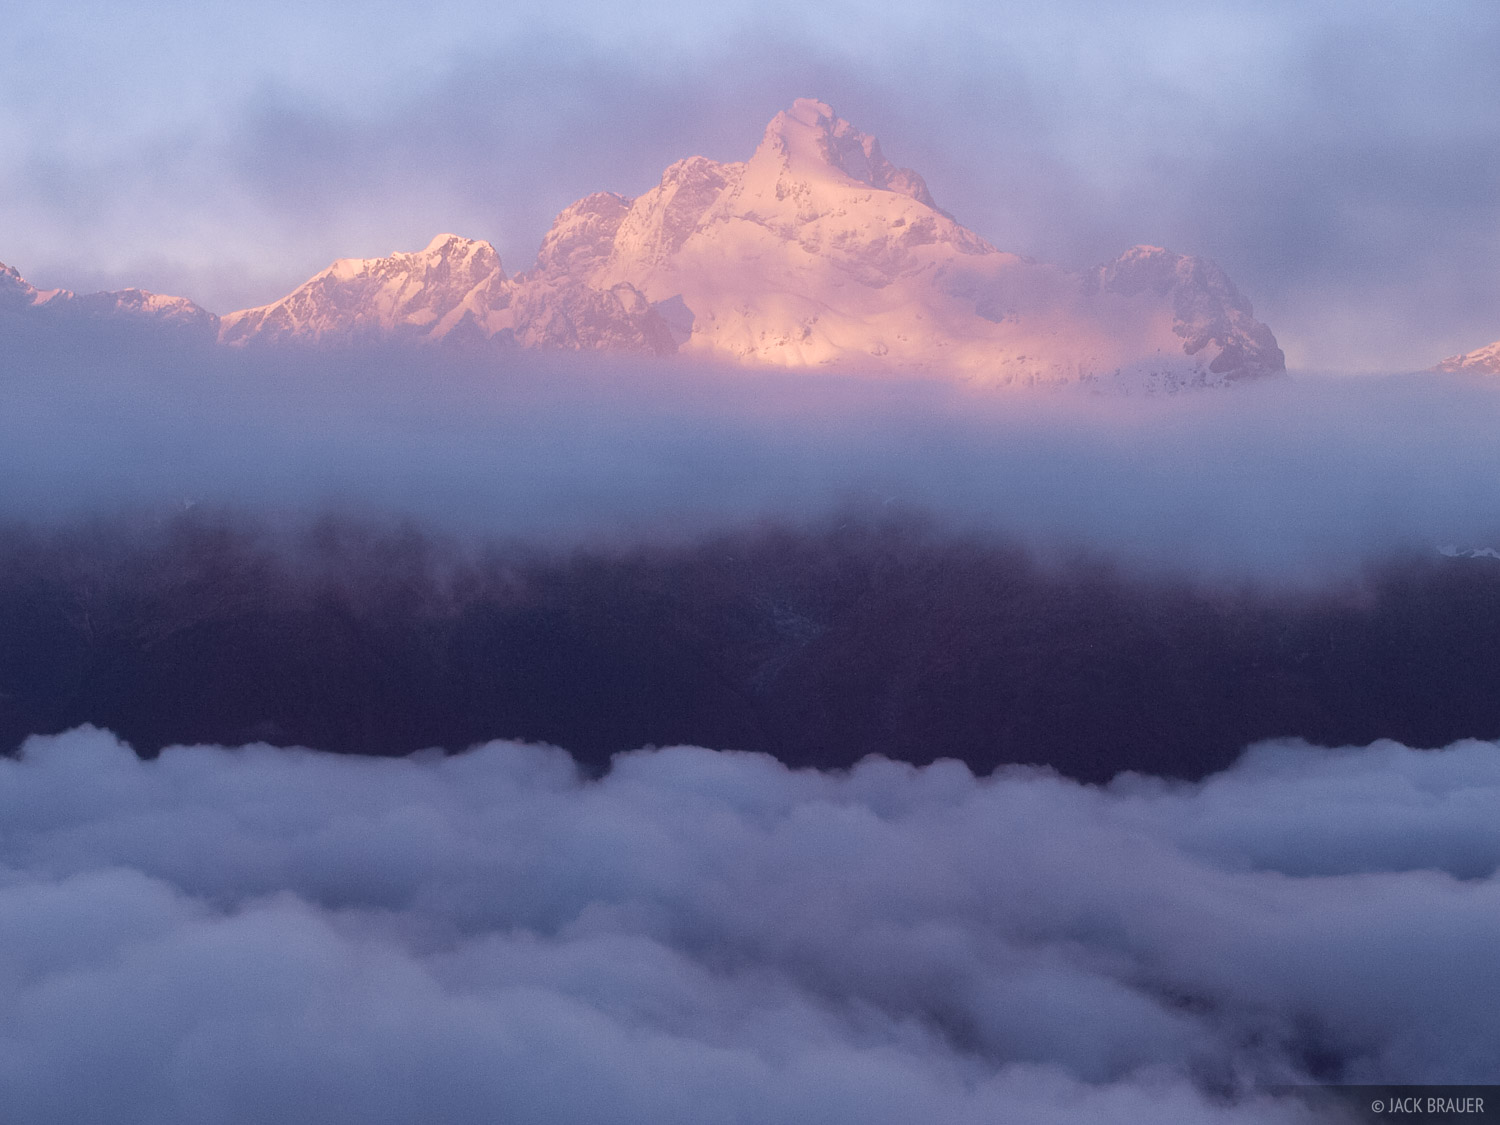 Sunrise light shines on Mt. Gifford in the Darren Mountains, as a sea of clouds breaks up.